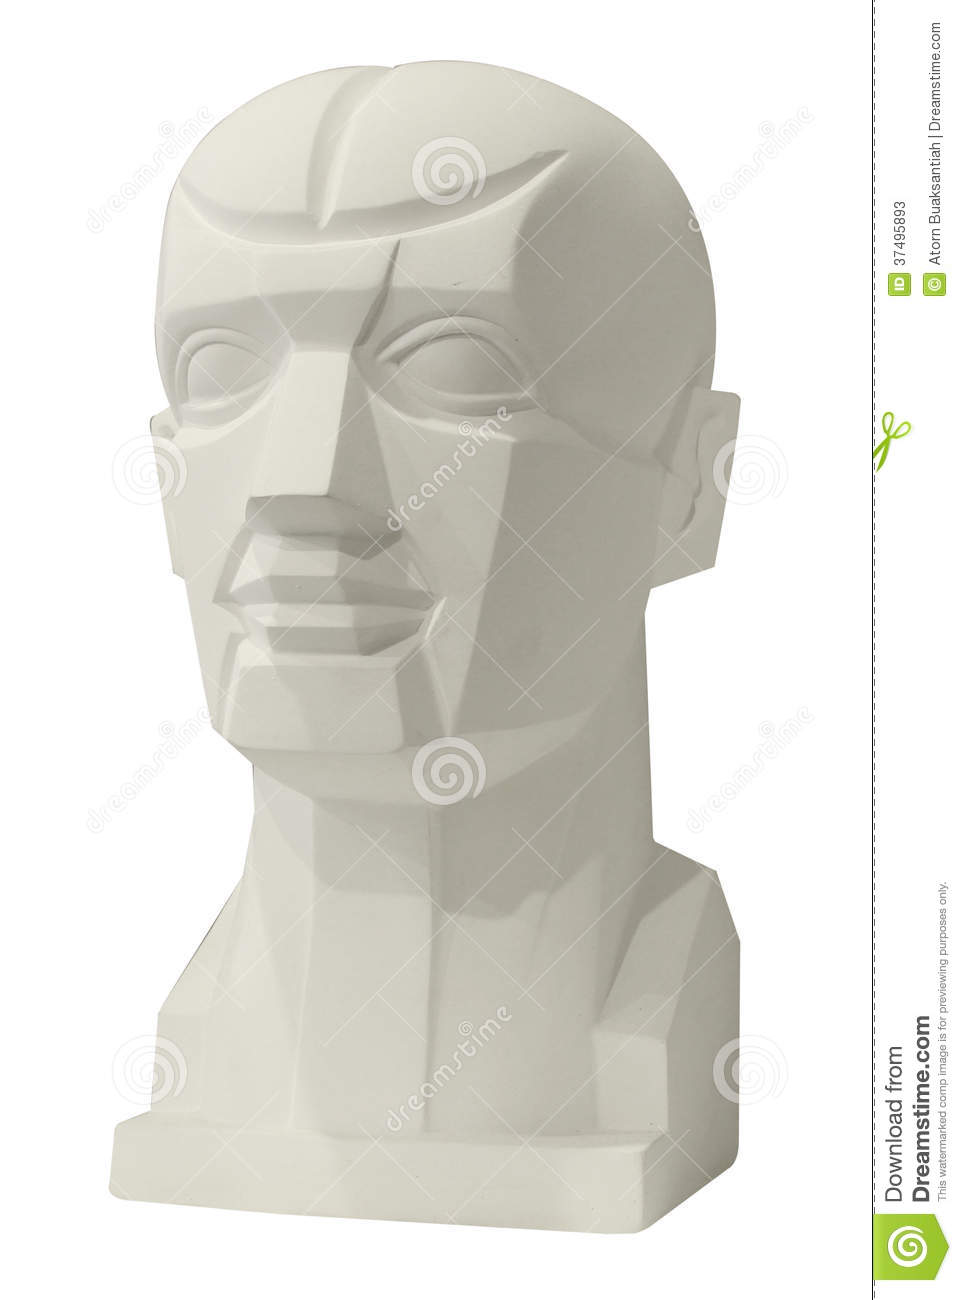 Sculptures Anatomy Head For Drawing Stock Image - Image of gallery ...